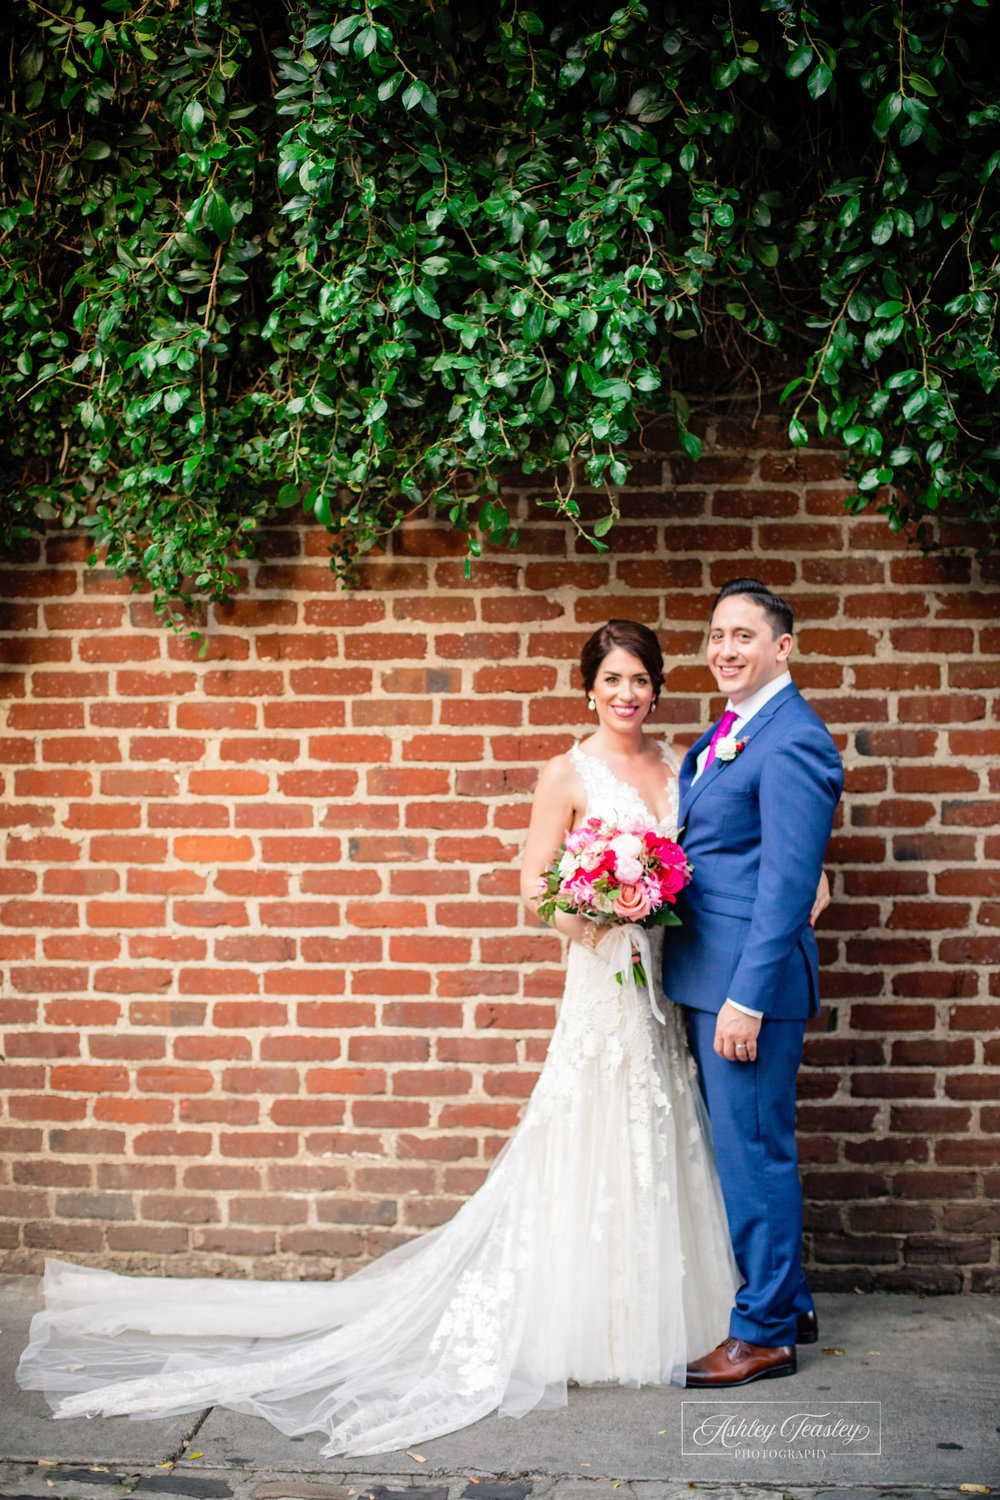 Tarrah & Francisco - The Kimpton Sawyer Hotel - The Firehouse Old Sac - Sacramento Wedding Photographer - Ashley Teasley Photography (47 of 118).jpg